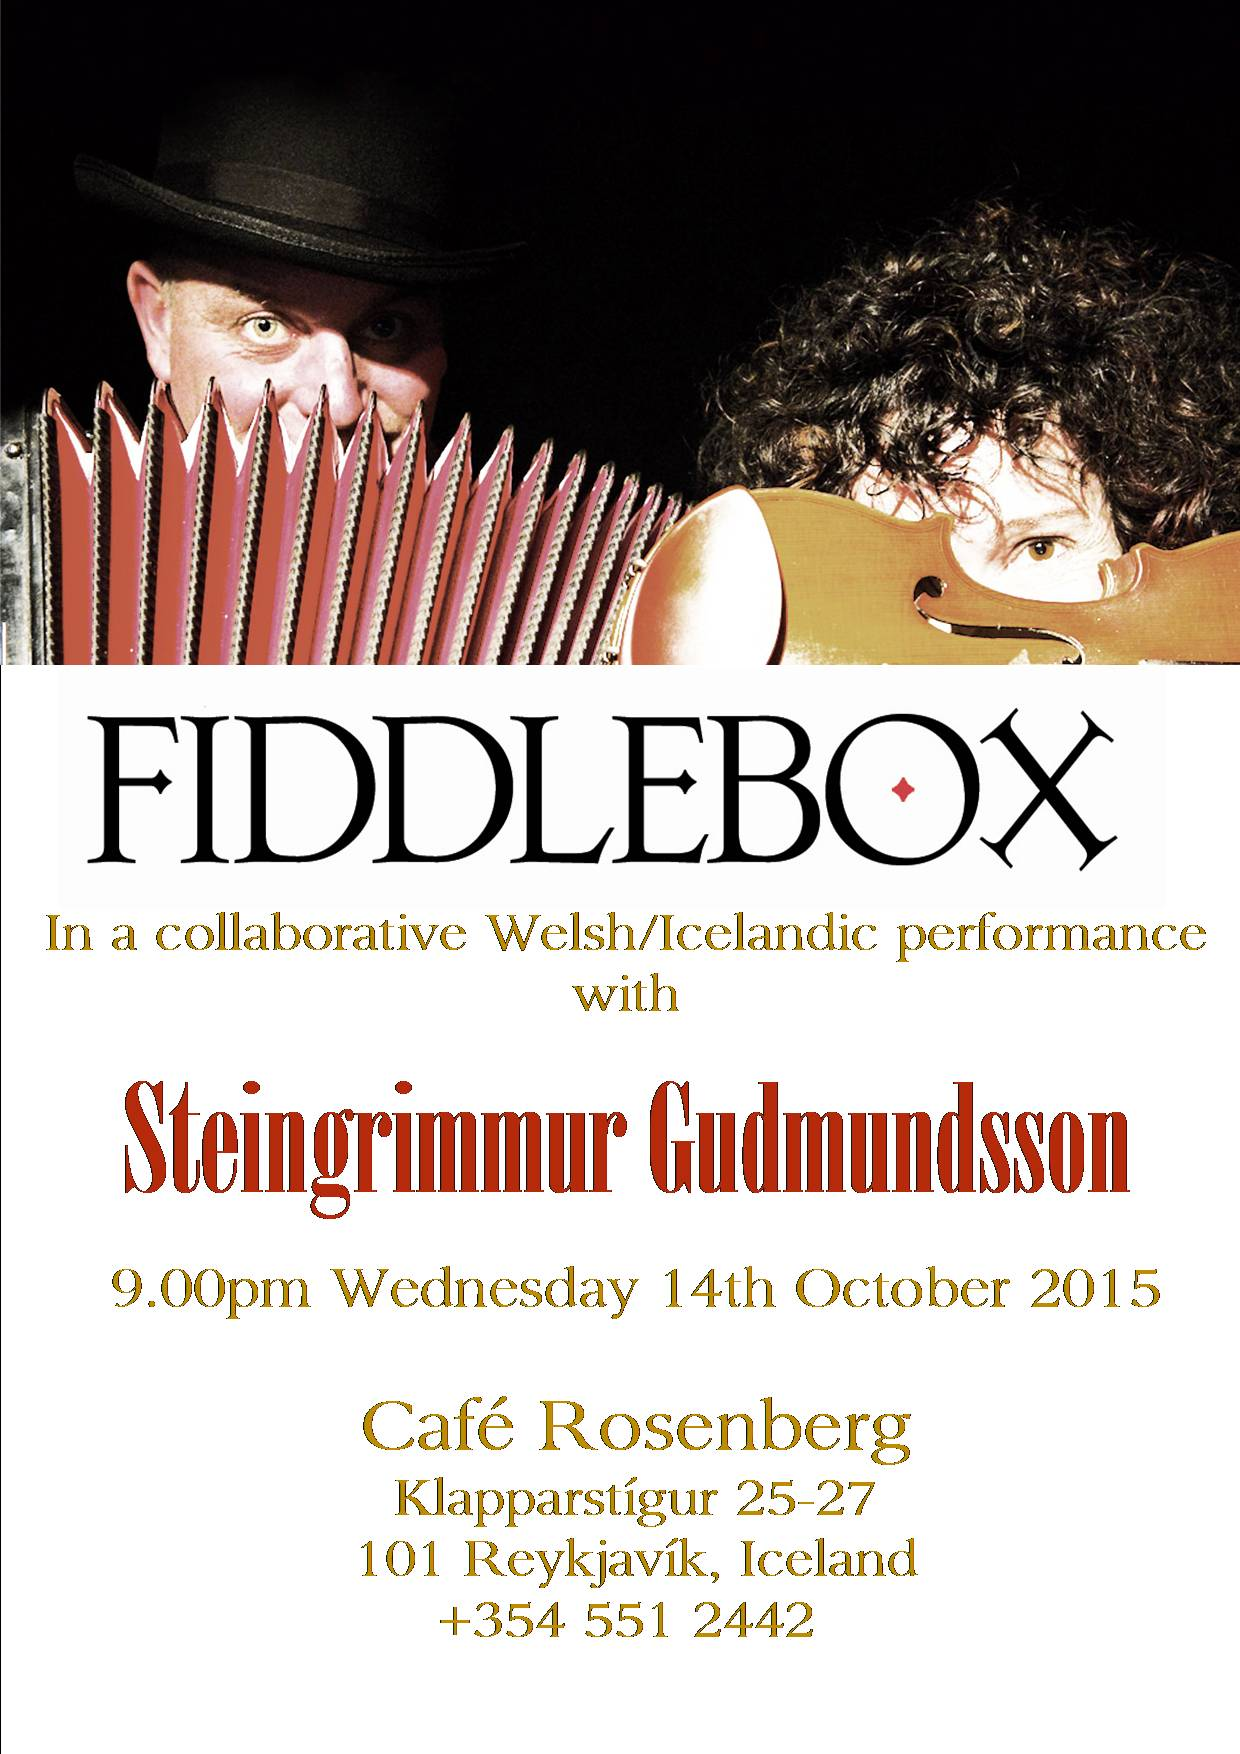 Fiddlebox at Cafe Rosenberg